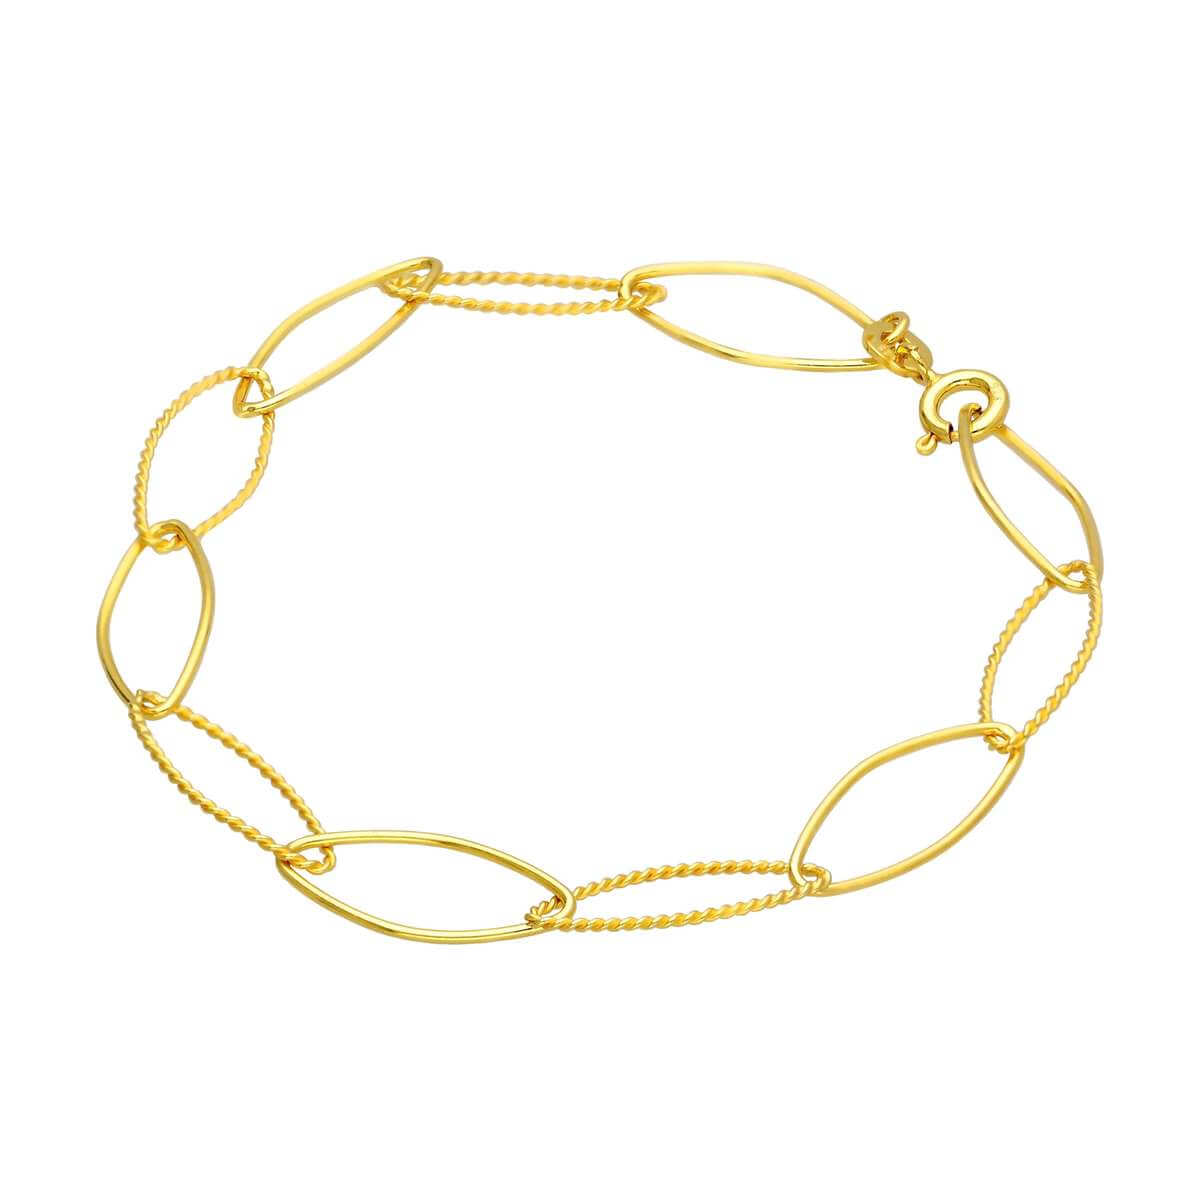 Gold Plated Sterling Silver Twisted Oval Link Chain Bracelet